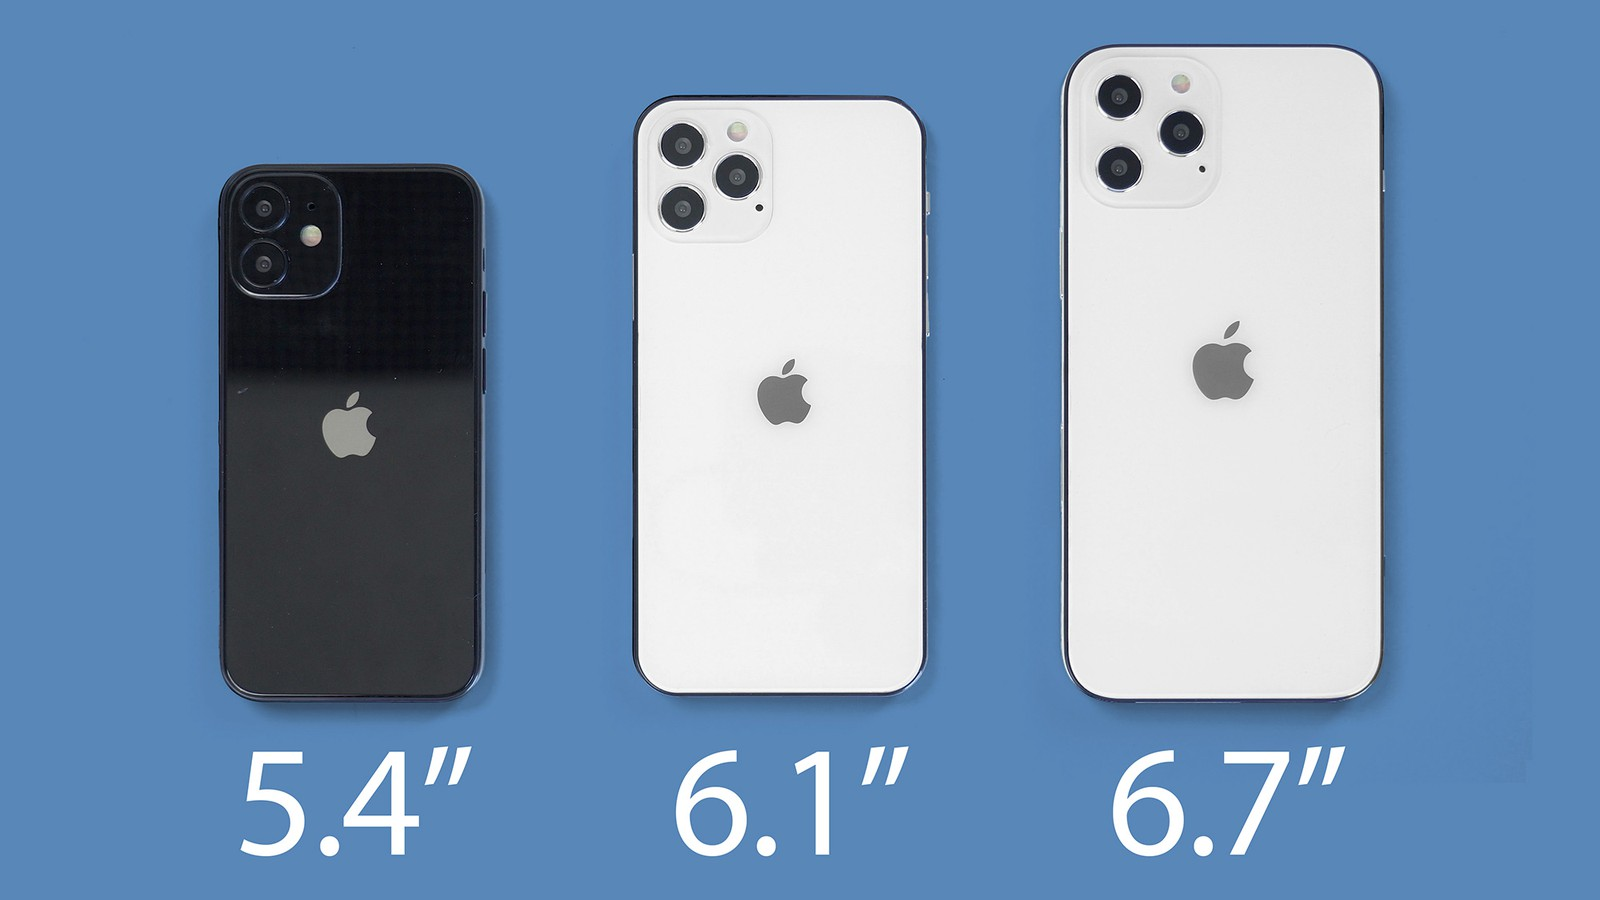 https://images.macrumors.com/t/rsLi5Po0f7uRwd4076-dWrM_XV8=/1600x0/filters:quality(90)/article-new/2020/07/iphone12dummylineup.jpg